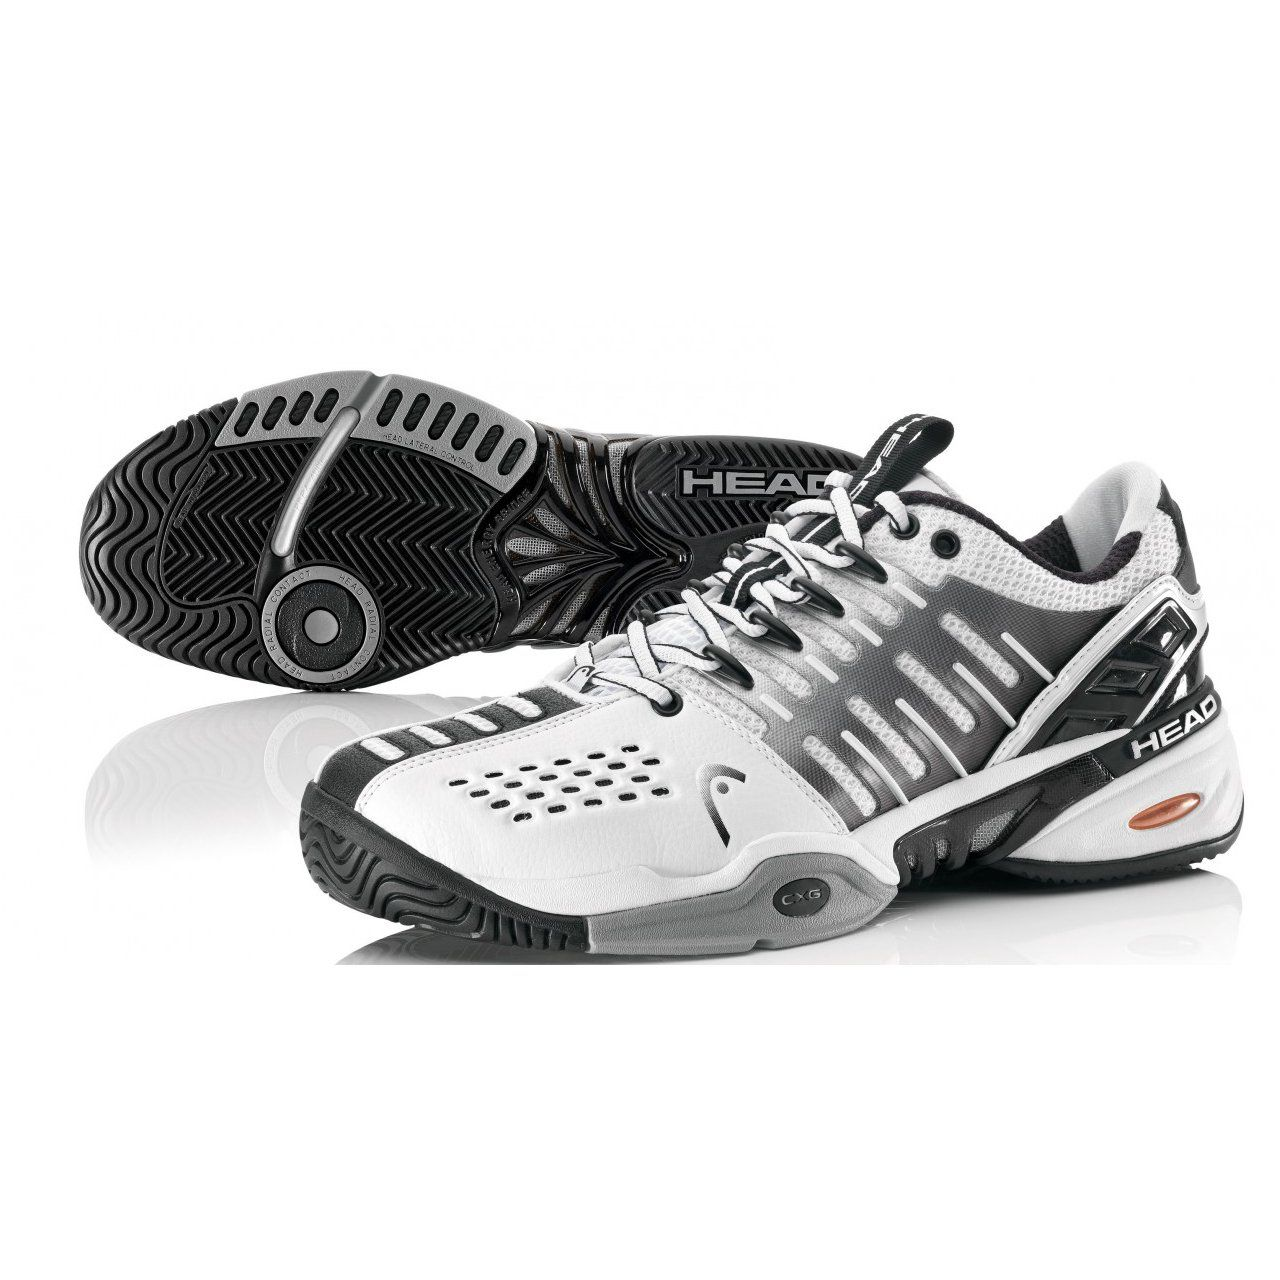 best recommended women s tennis shoes for aggressive